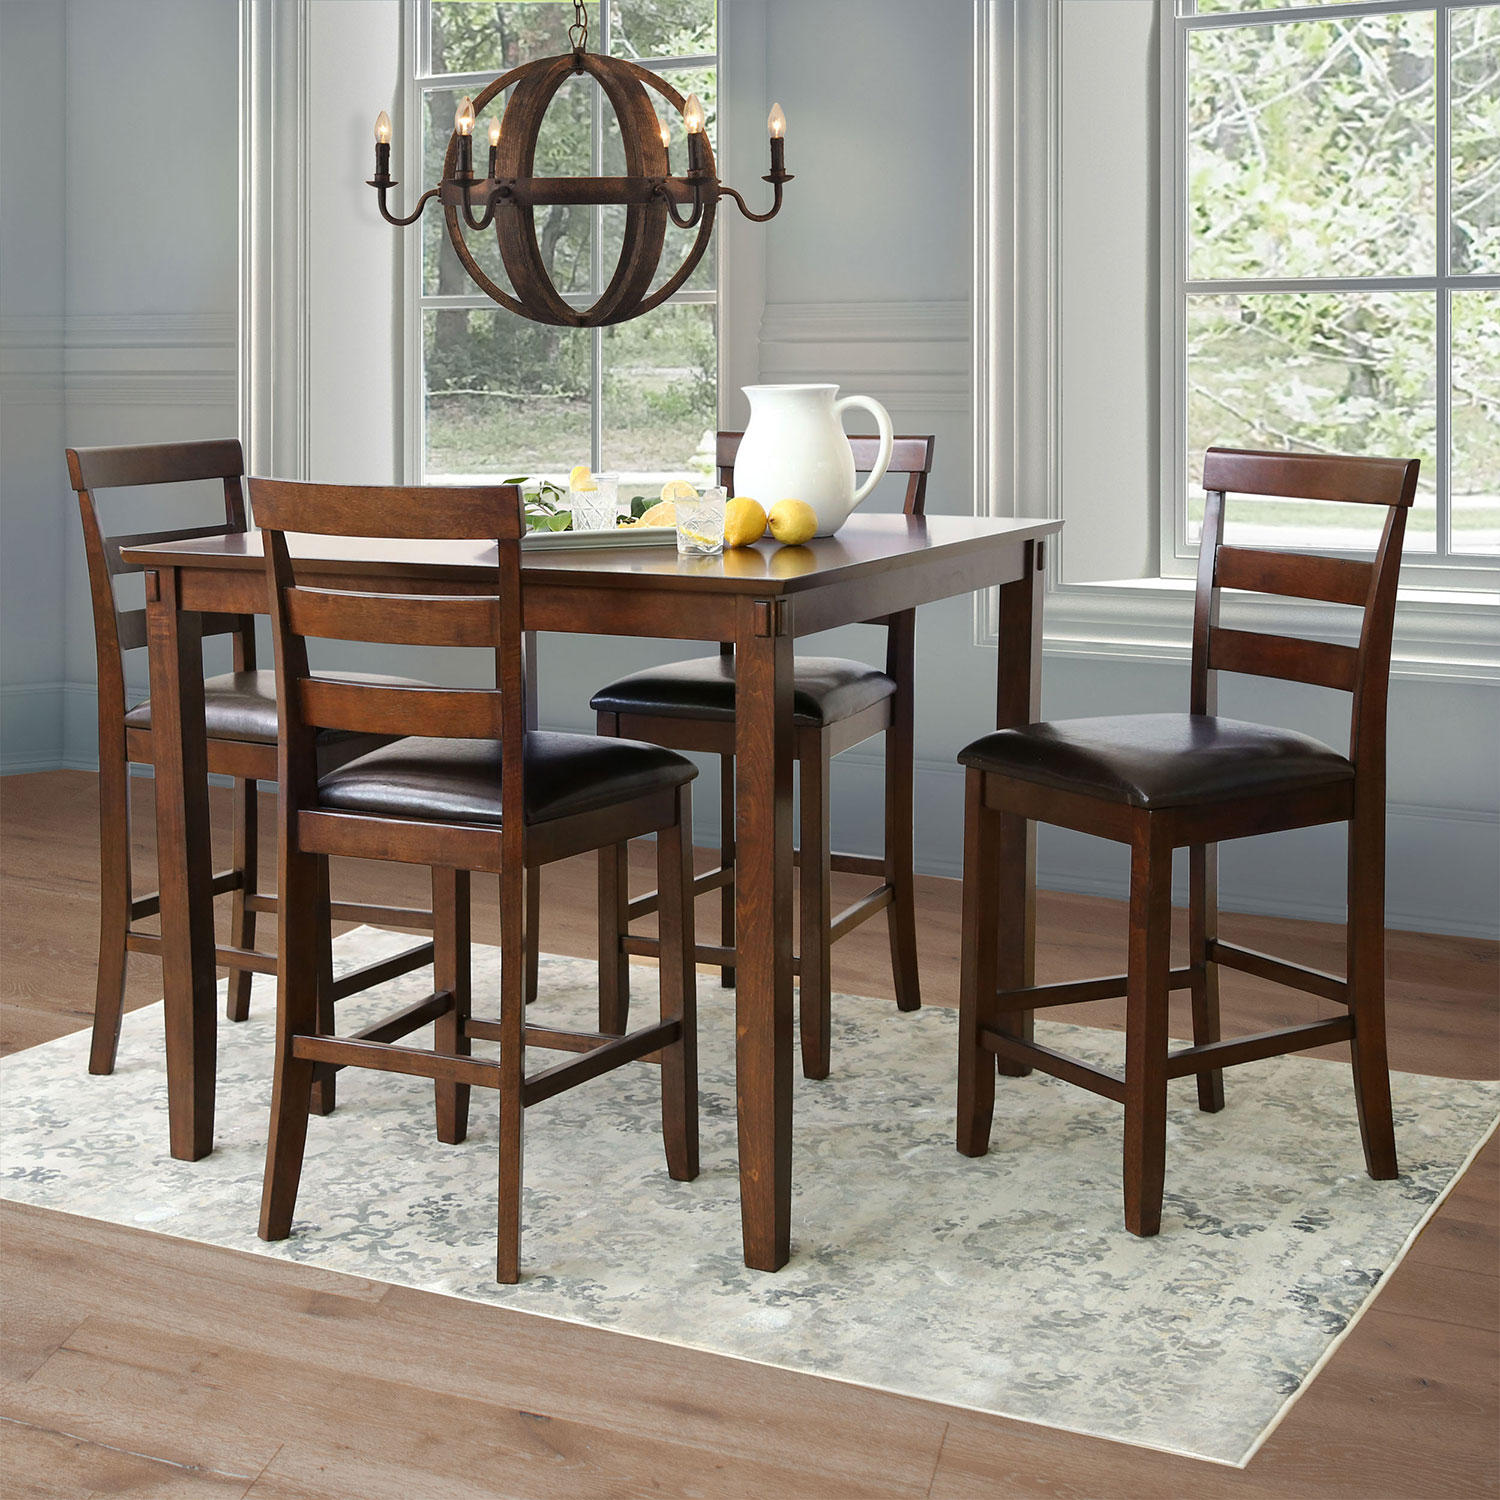 Abbyson Living Sycamore 5-Piece Counter-Height Dining Set